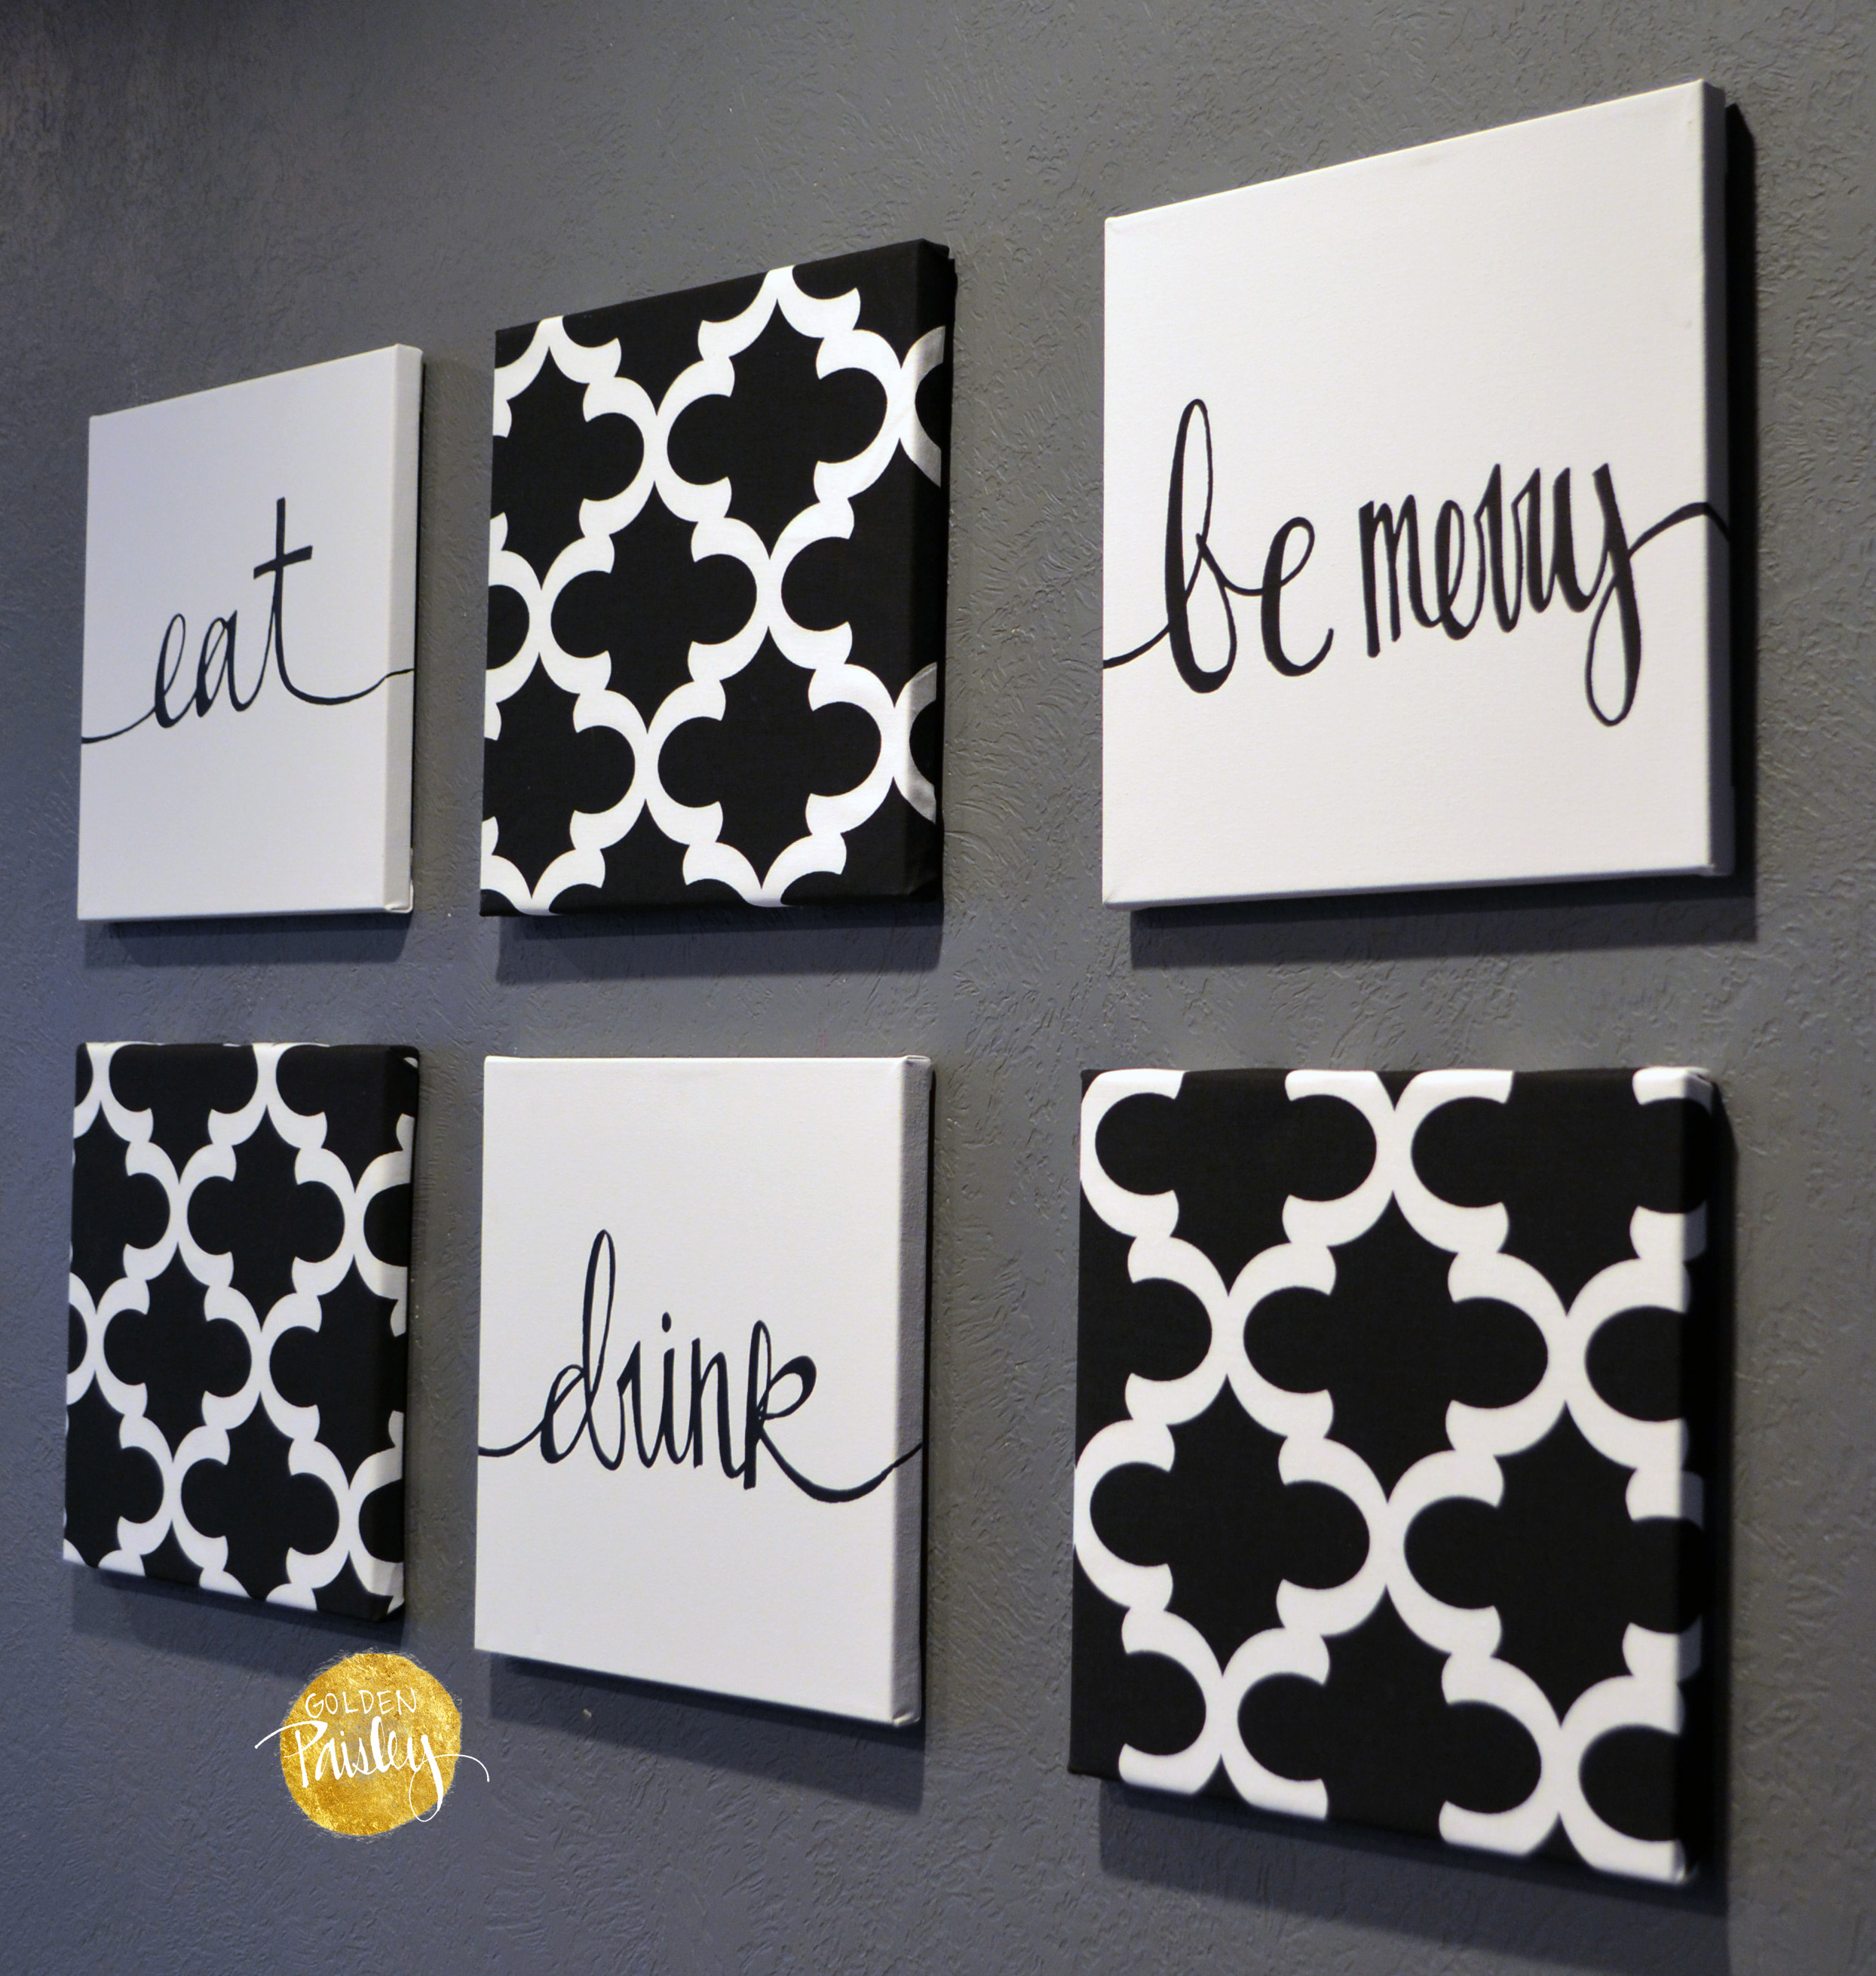 Black Wall Decor Classy Black And White Moroccan 6 Pack Wall Art Inspiration